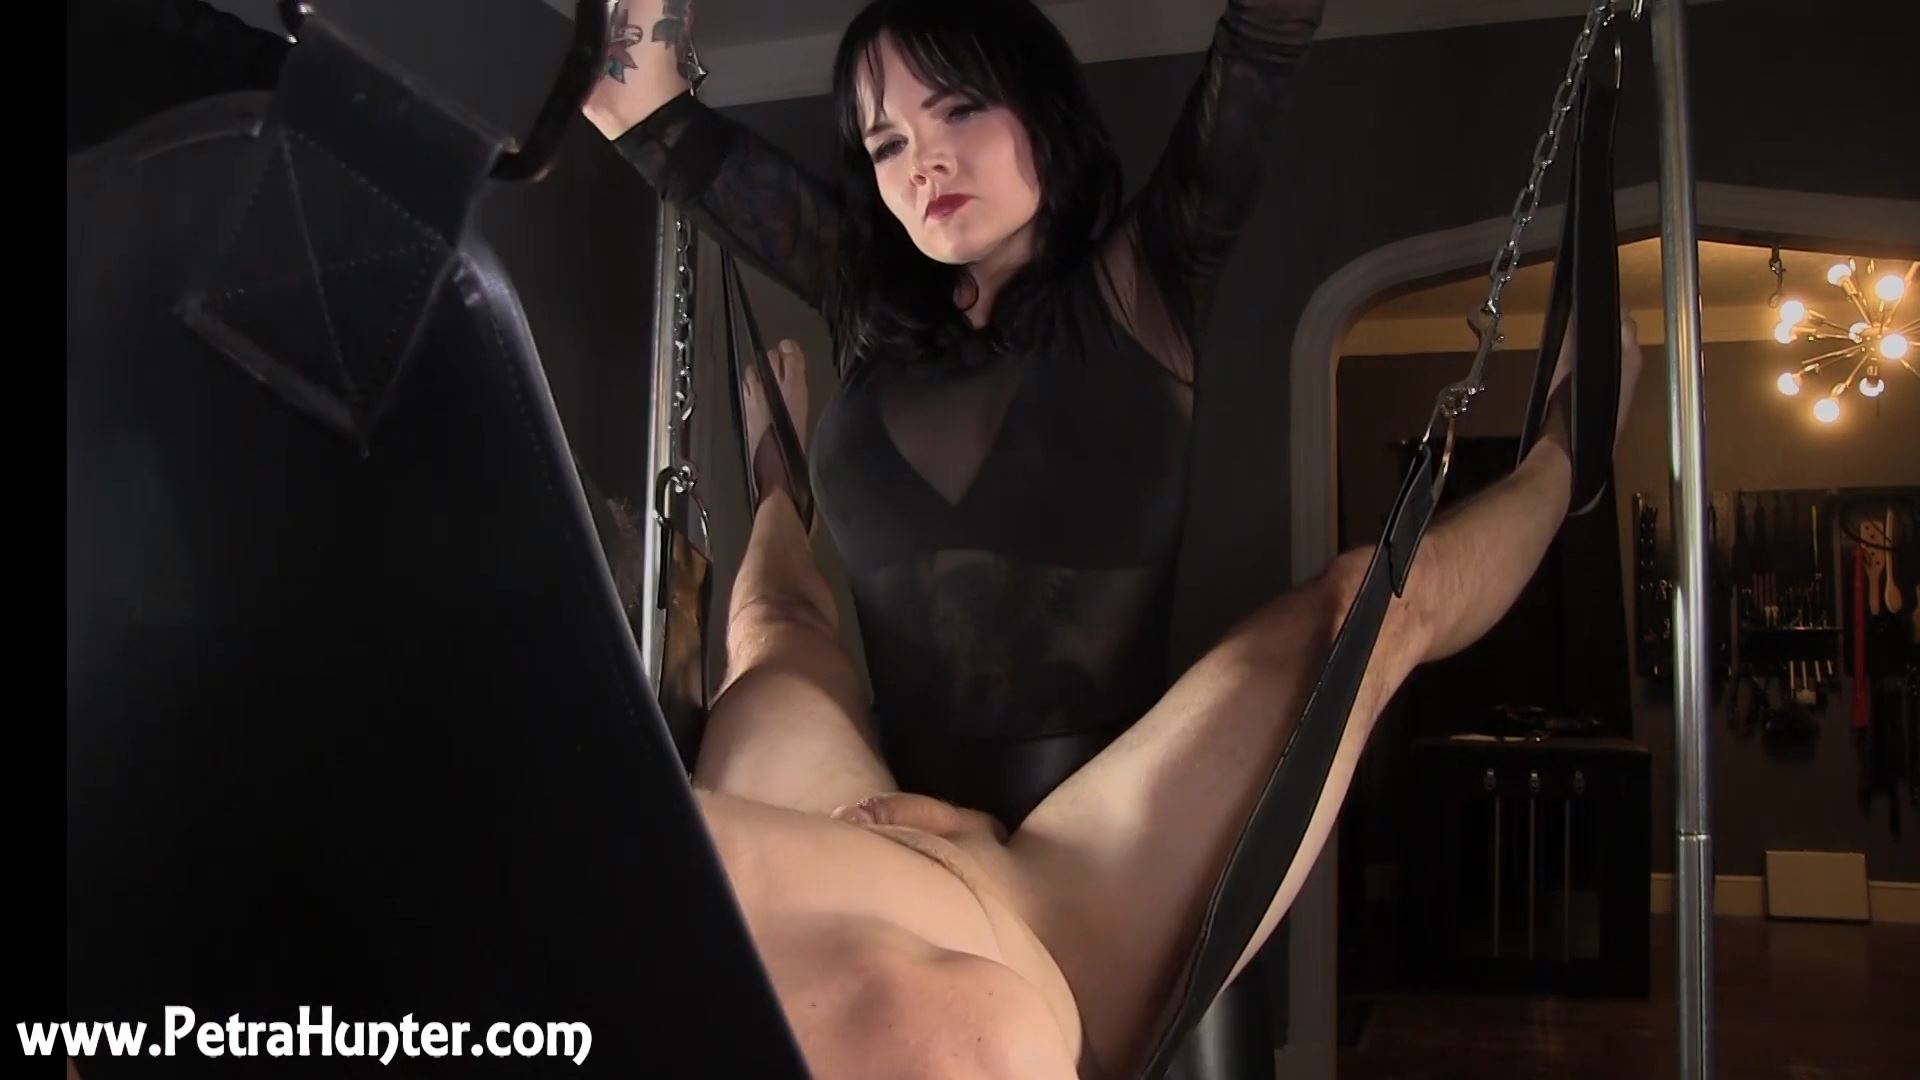 Mistress Petra Hunter In Scene: Anal Marathon: Pegging Compilation - STREAMPETRA - FULL HD/1080p/MP4